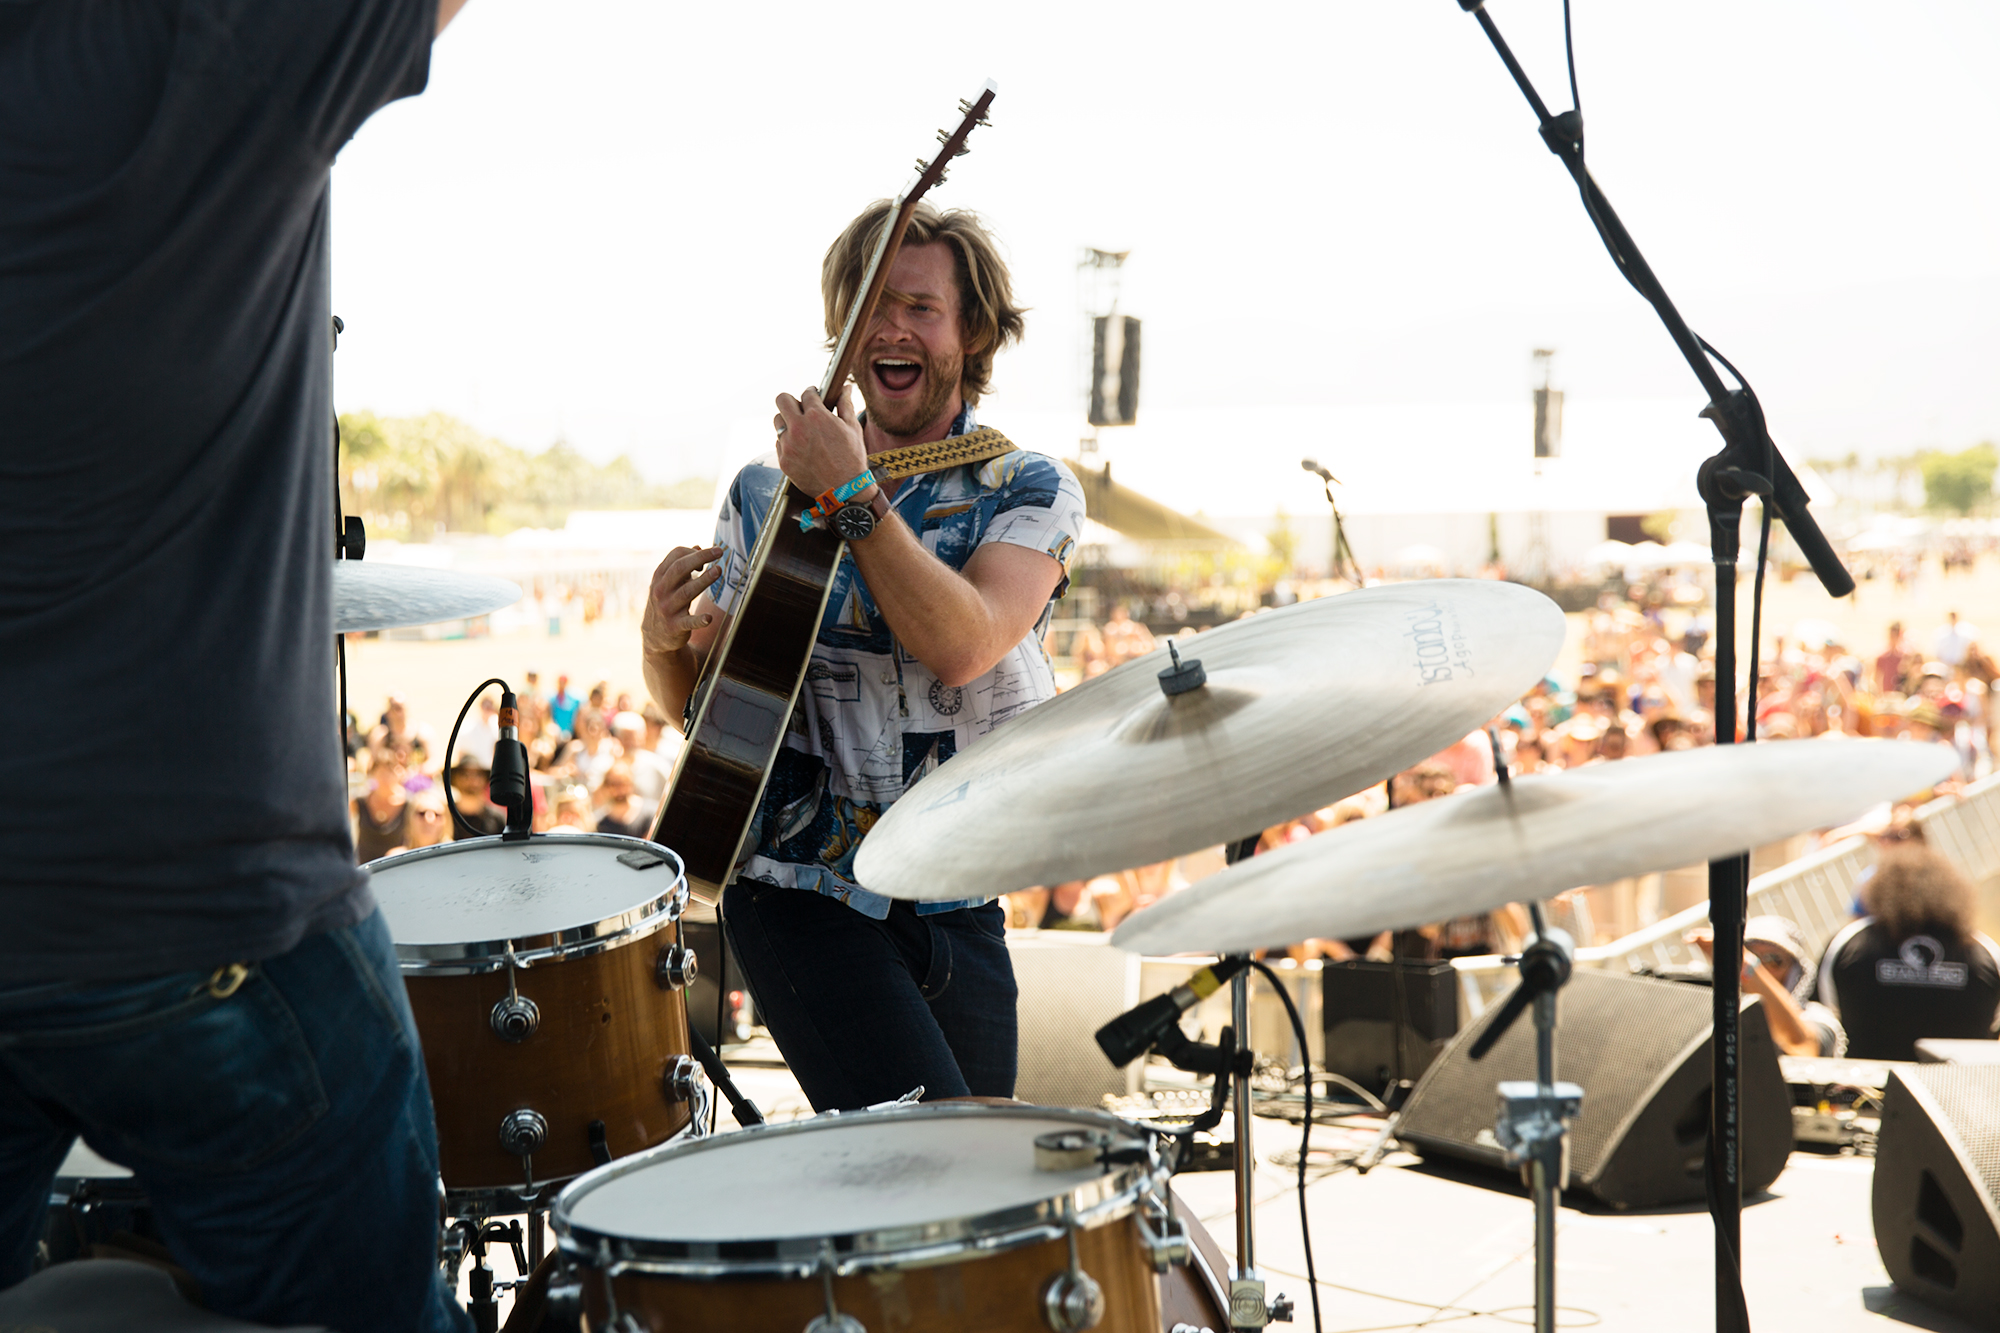 Mr. Clay and Jamestown Revival perform at the Outdoor Theatre at Coachella on April 18, 2015. The band performed both weekends.